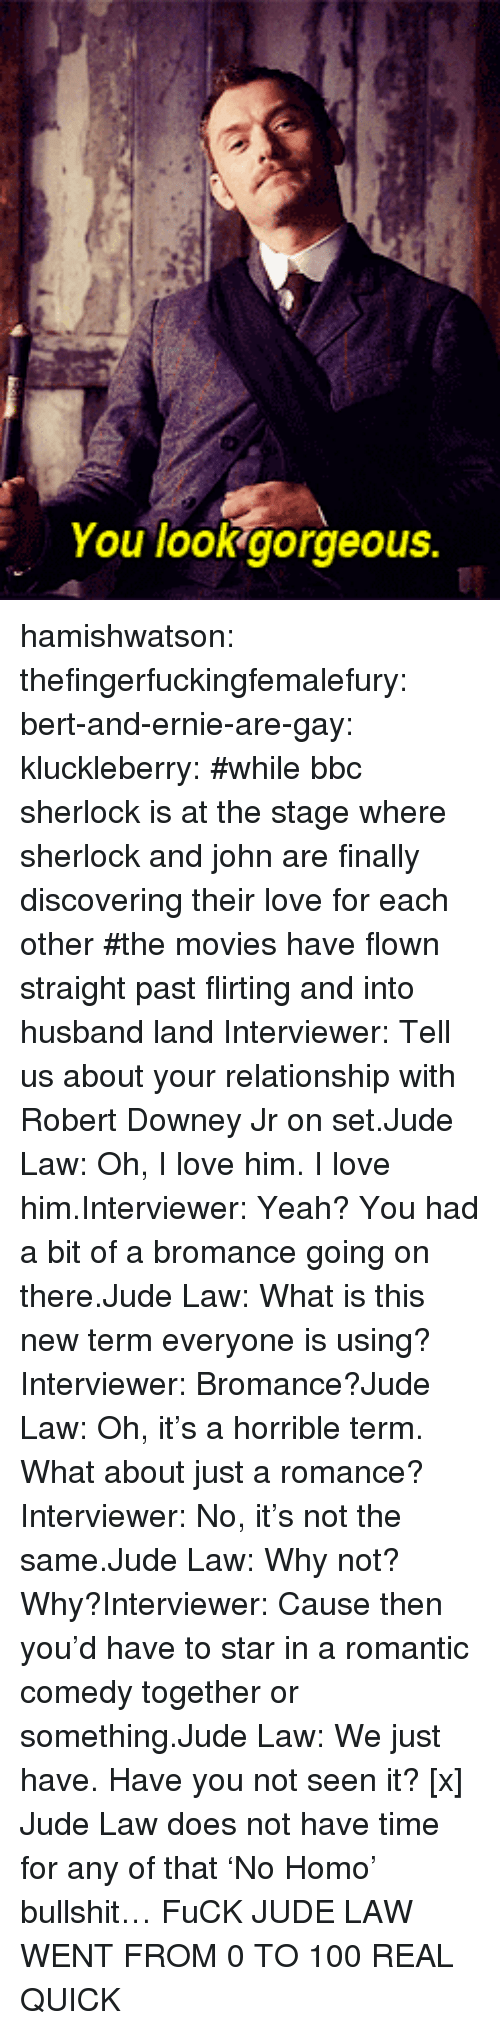 Sherlock Holmes: You lookgorgeous. hamishwatson: thefingerfuckingfemalefury:  bert-and-ernie-are-gay:  kluckleberry: #while bbc sherlock is at the stage where sherlock and john are finally discovering their love for each other #the movies have flown straight past flirting and into husband land Interviewer: Tell us about your relationship with Robert Downey Jr on set.Jude Law: Oh, I love him. I love him.Interviewer: Yeah? You had a bit of a bromance going on there.Jude Law: What is this new term everyone is using?Interviewer: Bromance?Jude Law: Oh, it's a horrible term. What about just a romance?Interviewer: No, it's not the same.Jude Law: Why not? Why?Interviewer: Cause then you'd have to star in a romantic comedy together or something.Jude Law: We just have. Have you not seen it? [x]  Jude Law does not have time for any of that 'No Homo' bullshit…  FuCK JUDE LAW WENT FROM 0 TO 100 REAL QUICK